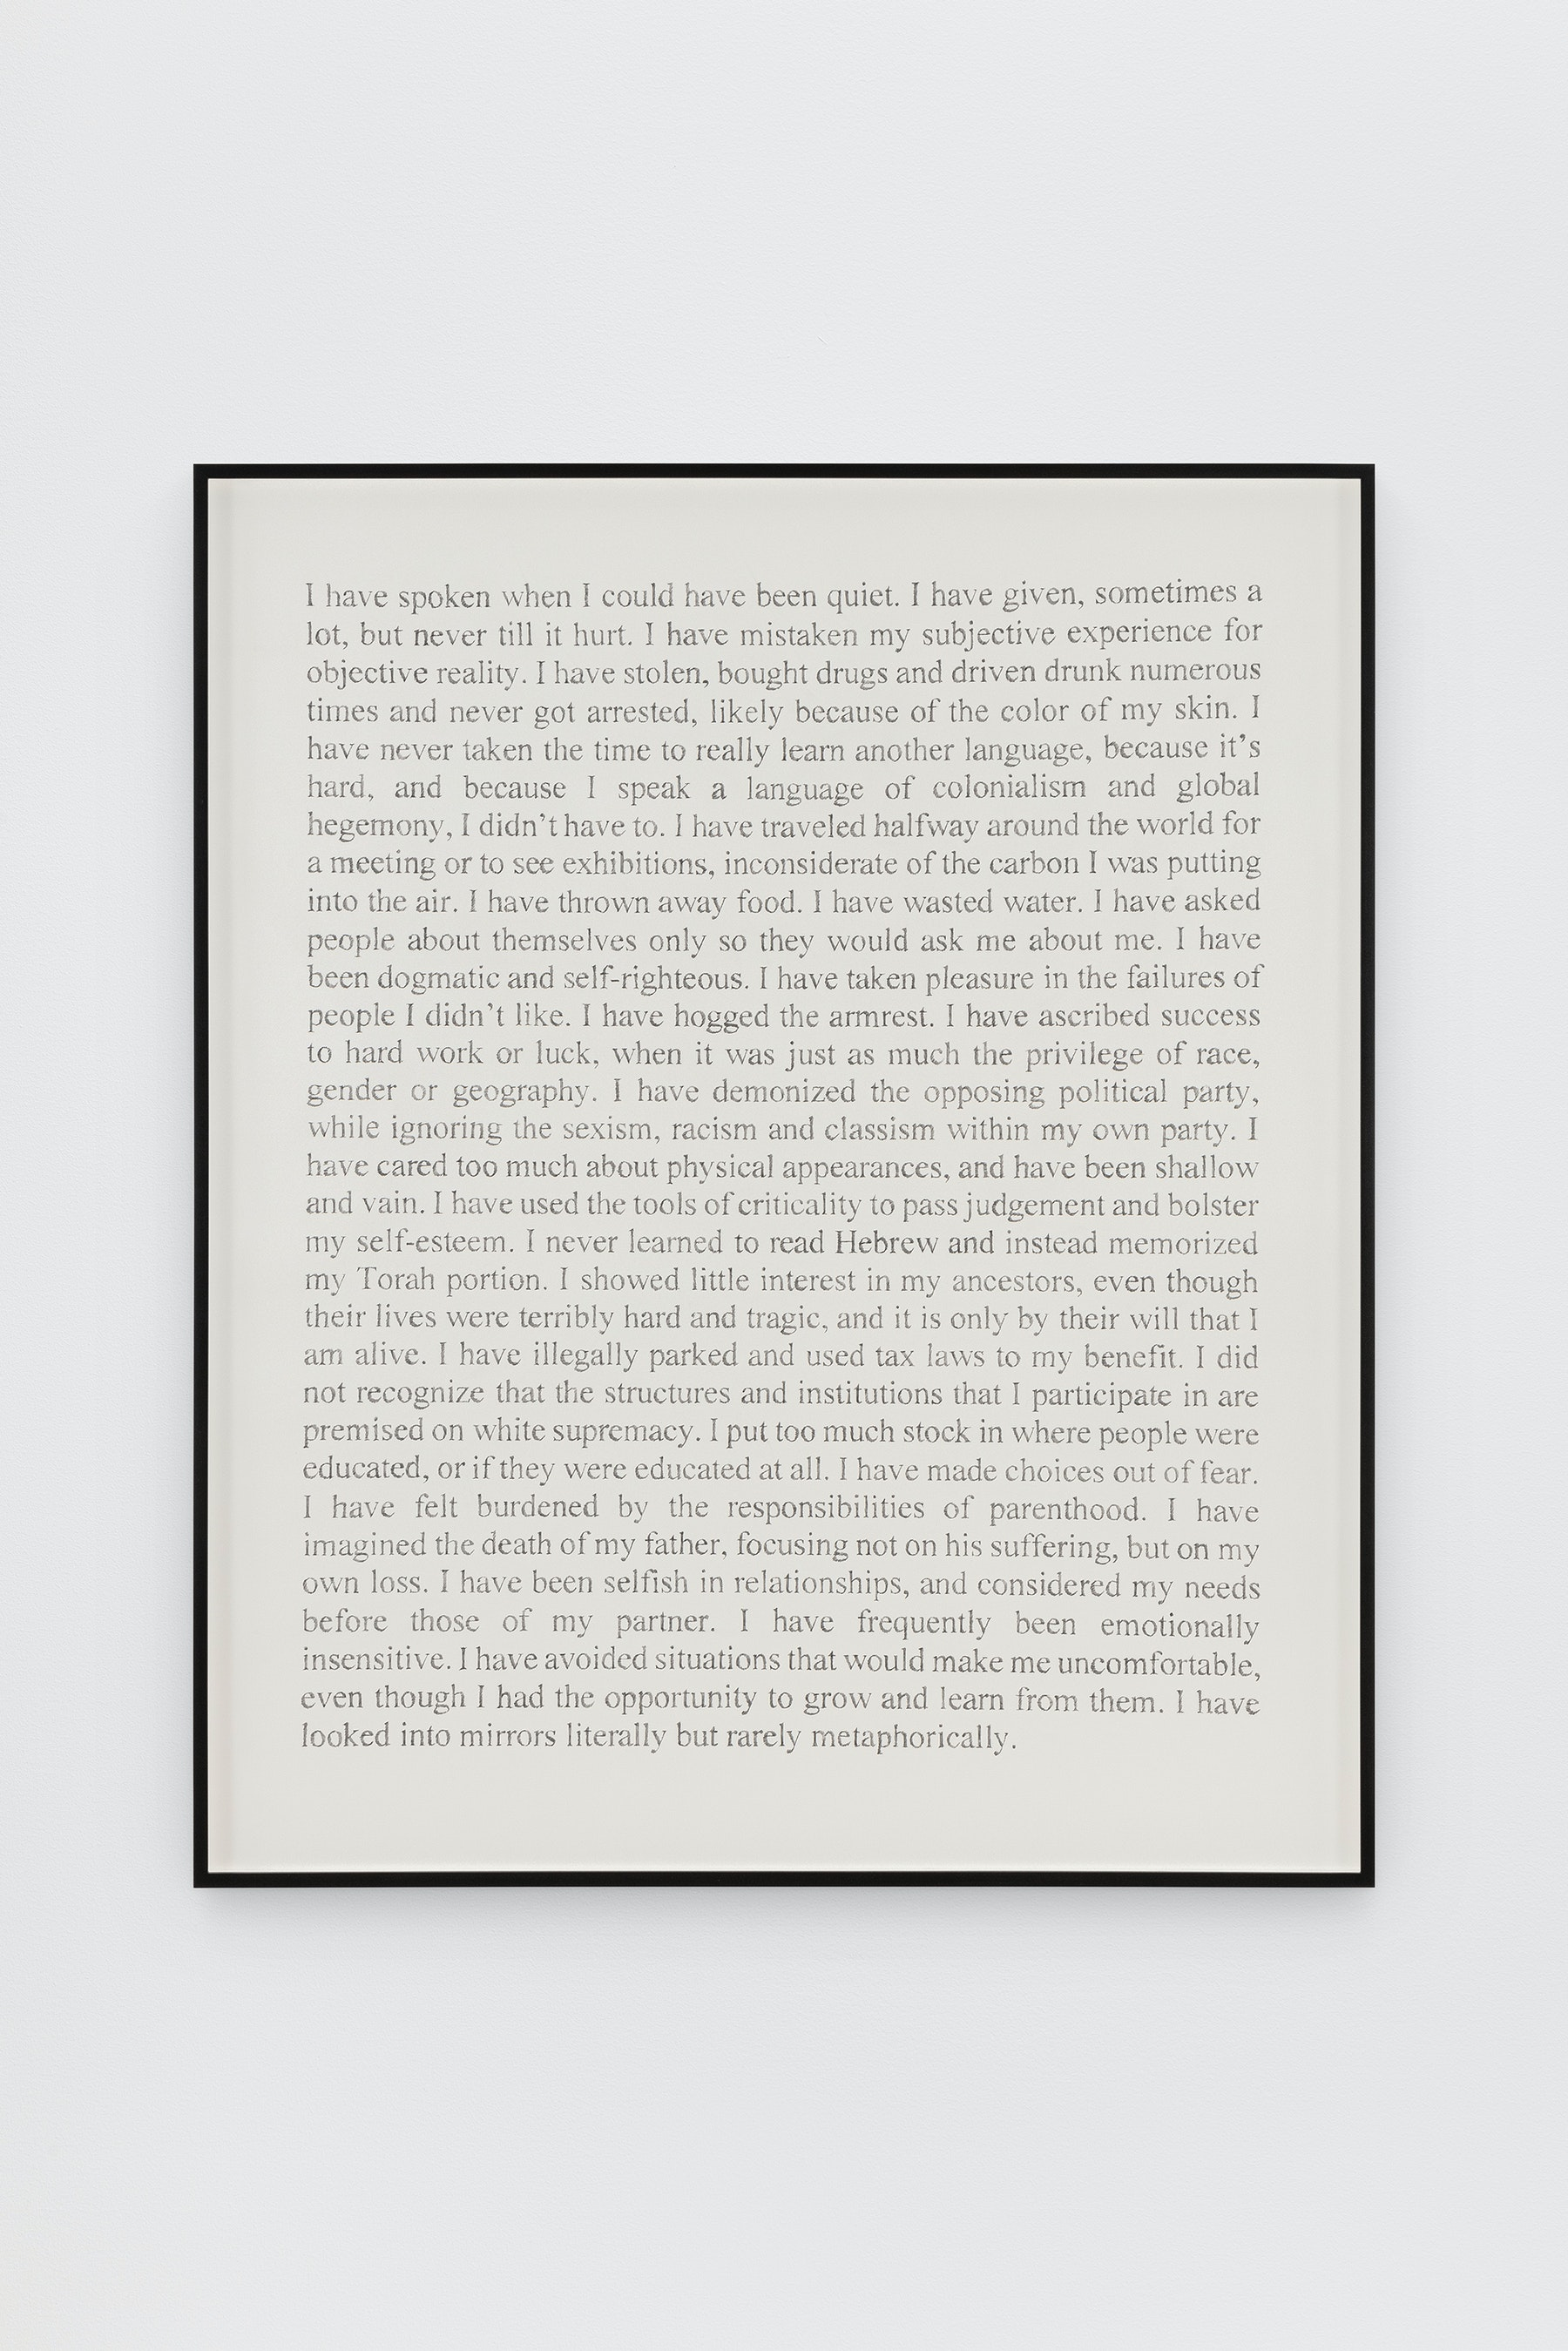 """Karl Haendel """"I have spoken when I could have been quiet #2,"""" 2021 Pencil on paper framed: 54"""" x 45"""" [HxW] (137.16 x 114.3 cm) Inventory #HAE590 Courtesy of the artist and Vielmetter Los Angeles"""